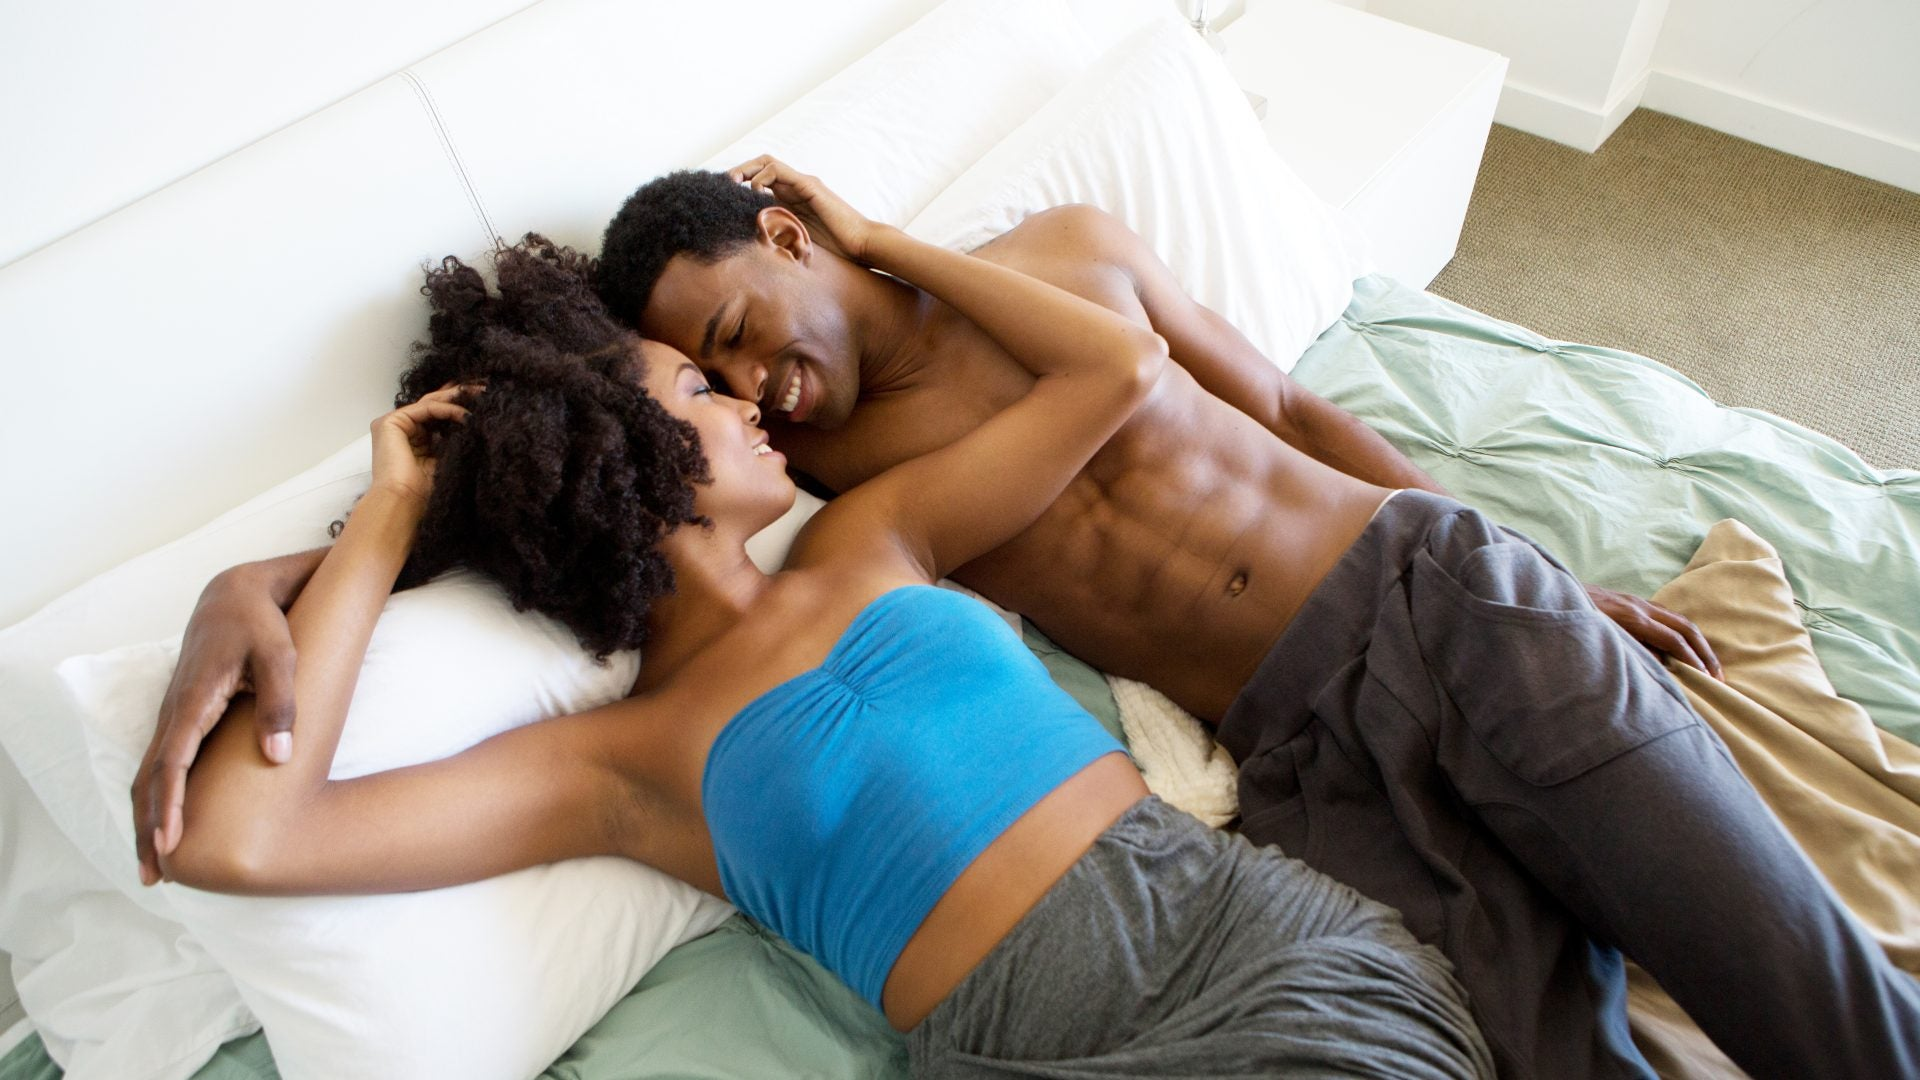 Intimacy Dos And Don'ts For Quarantined Couples During Coronavirus Pandemic